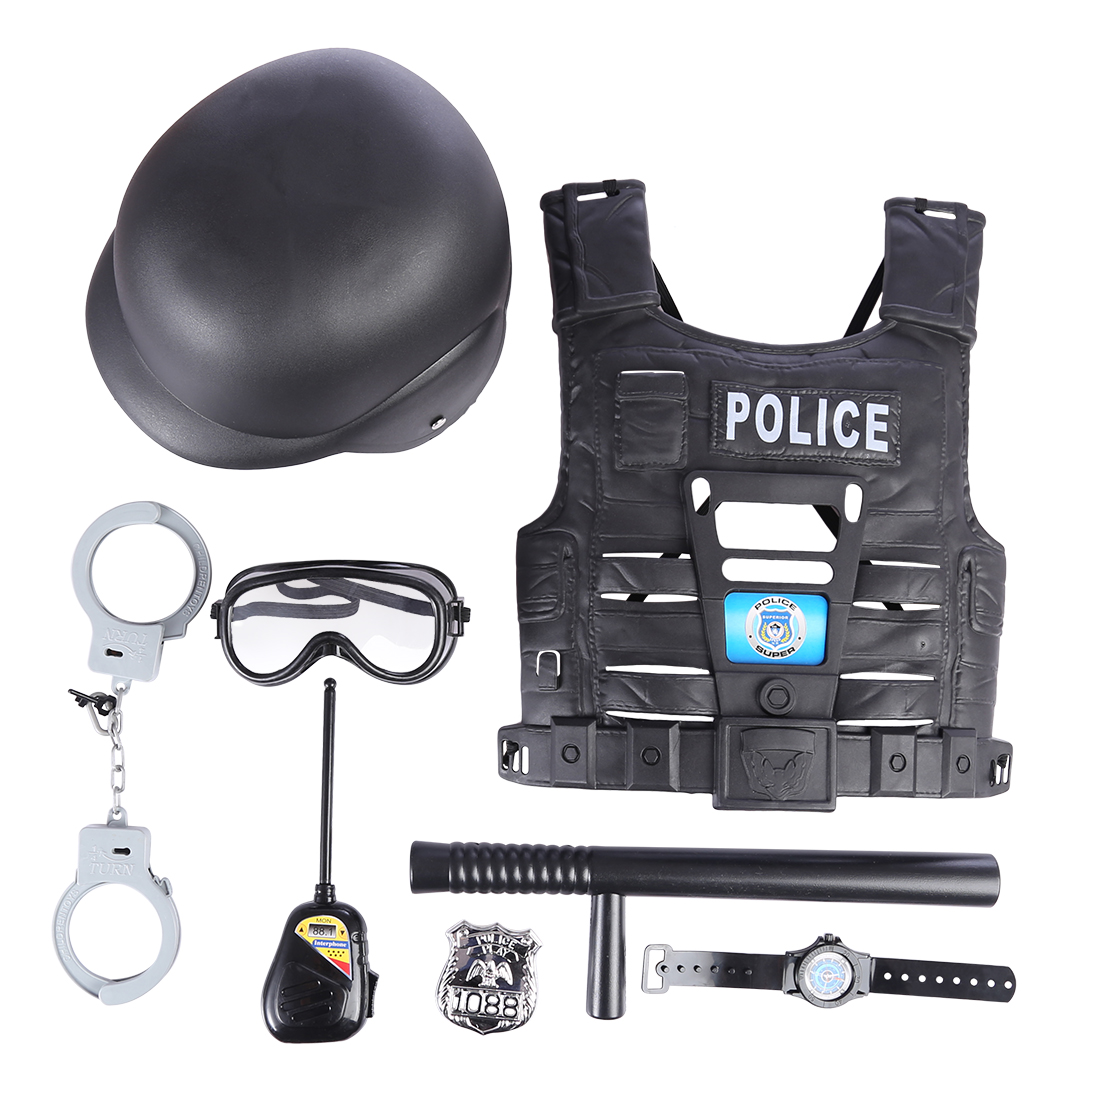 8/9/11 pcs <font><b>Police</b></font> Suit For Chlidren's Policeman Cosplay Policeman Costume With Helmet Goggles <font><b>Police</b></font> Officer Wear For Kids image